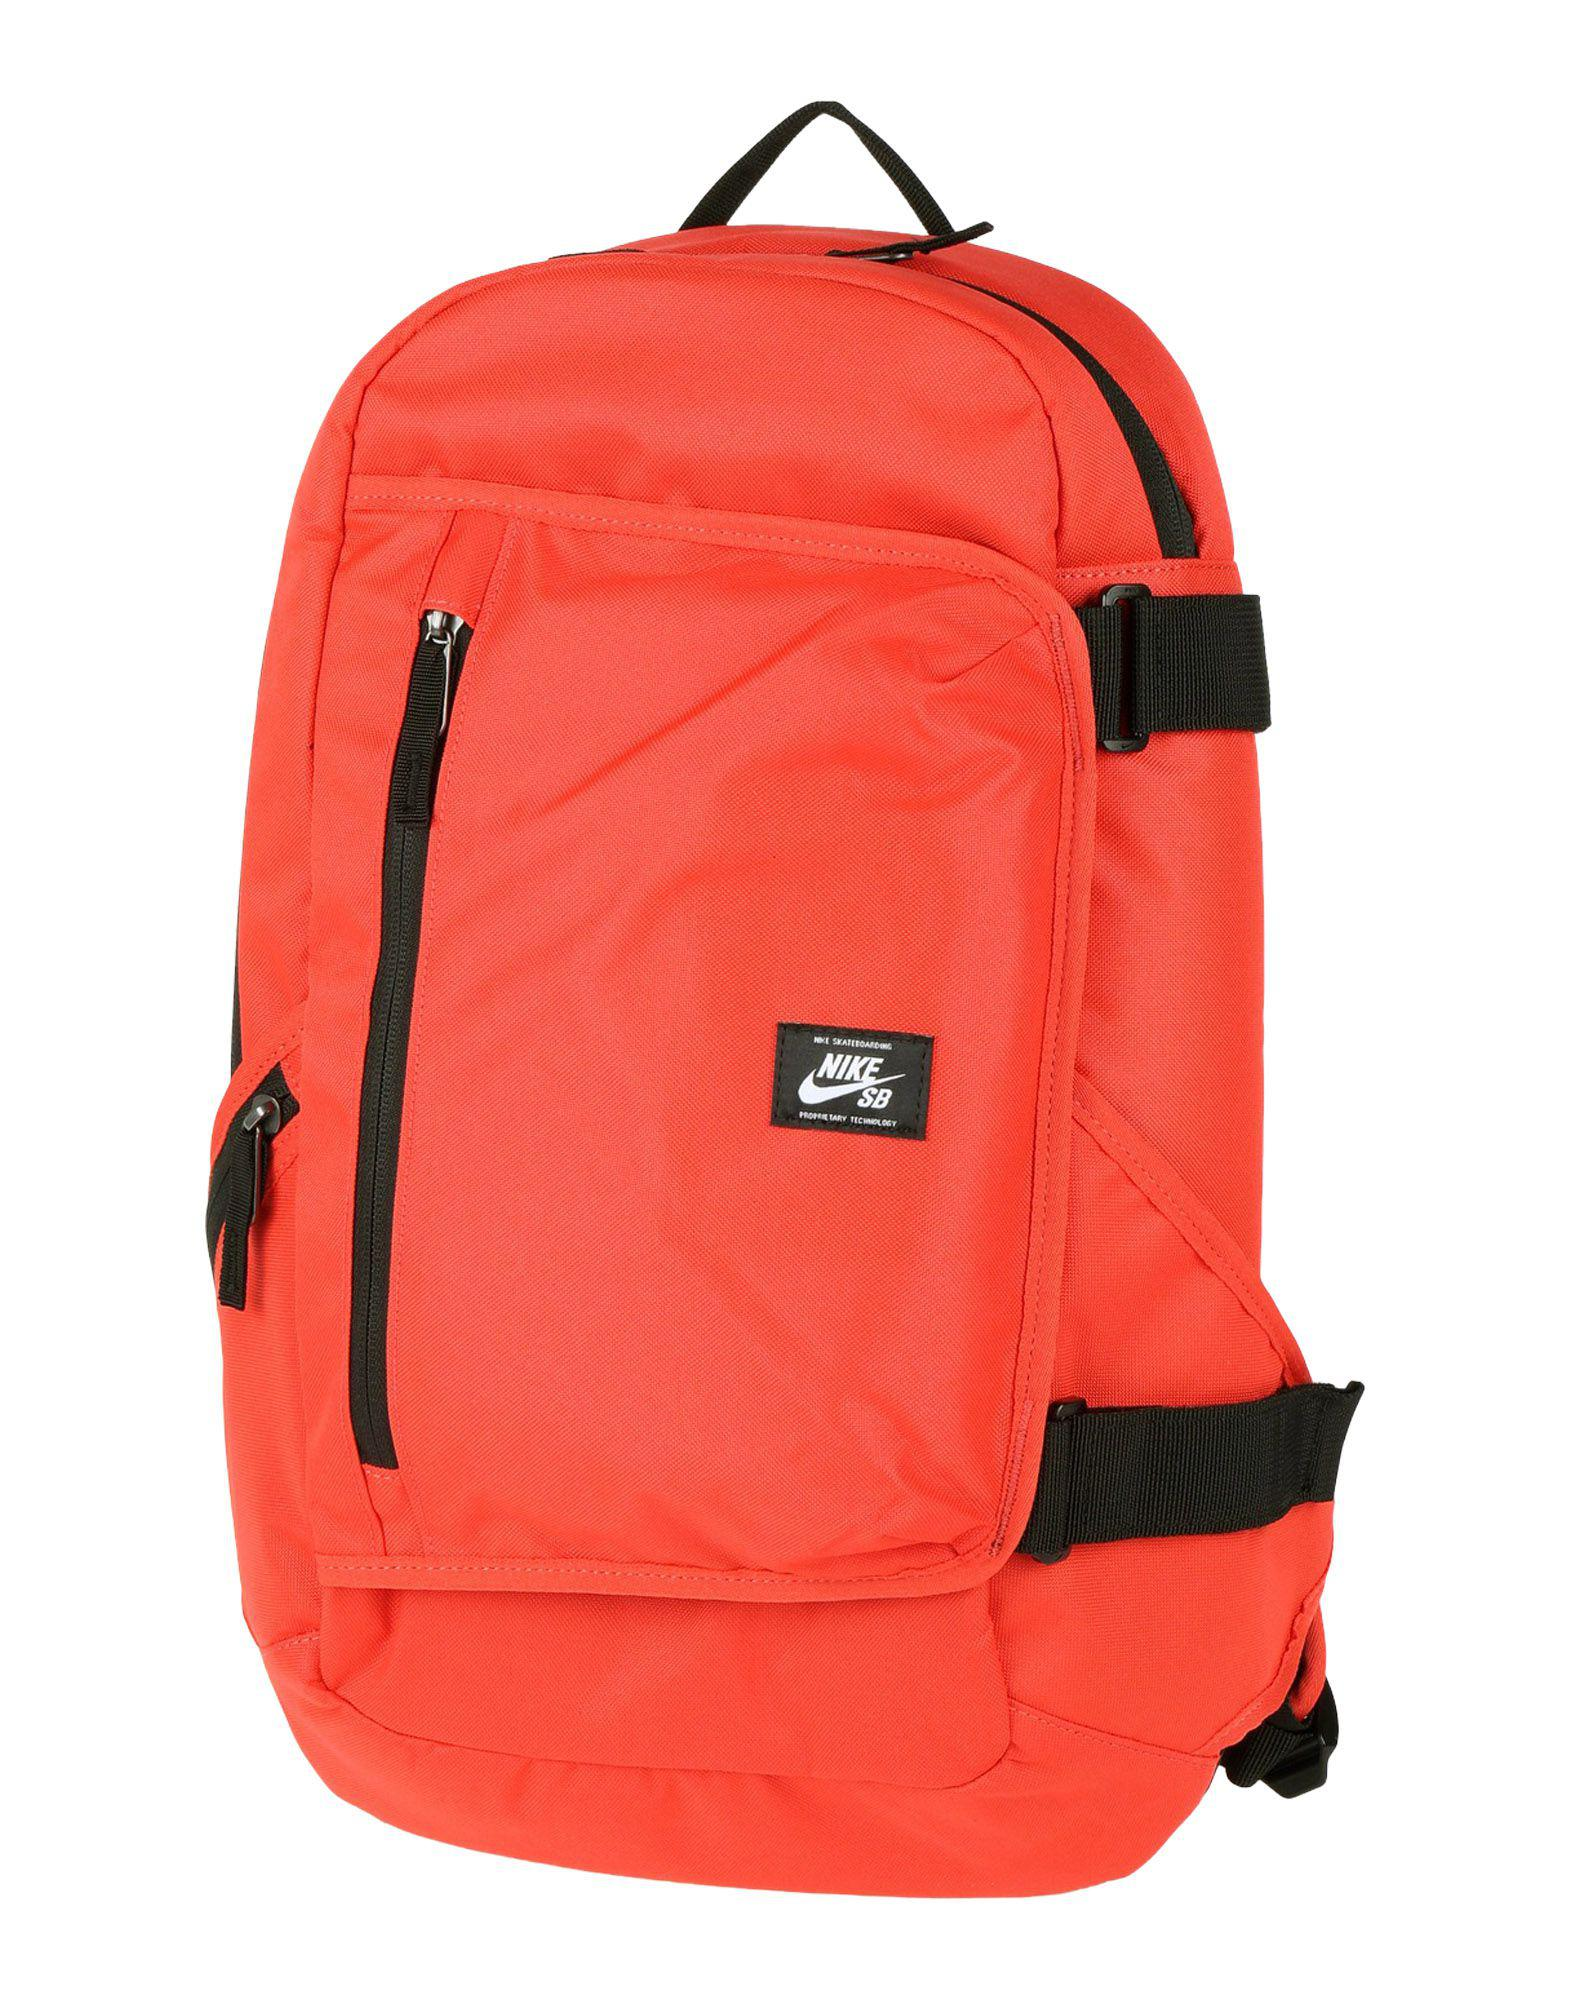 1252752699 Lyst - Nike Backpacks   Bum Bags in Red for Men